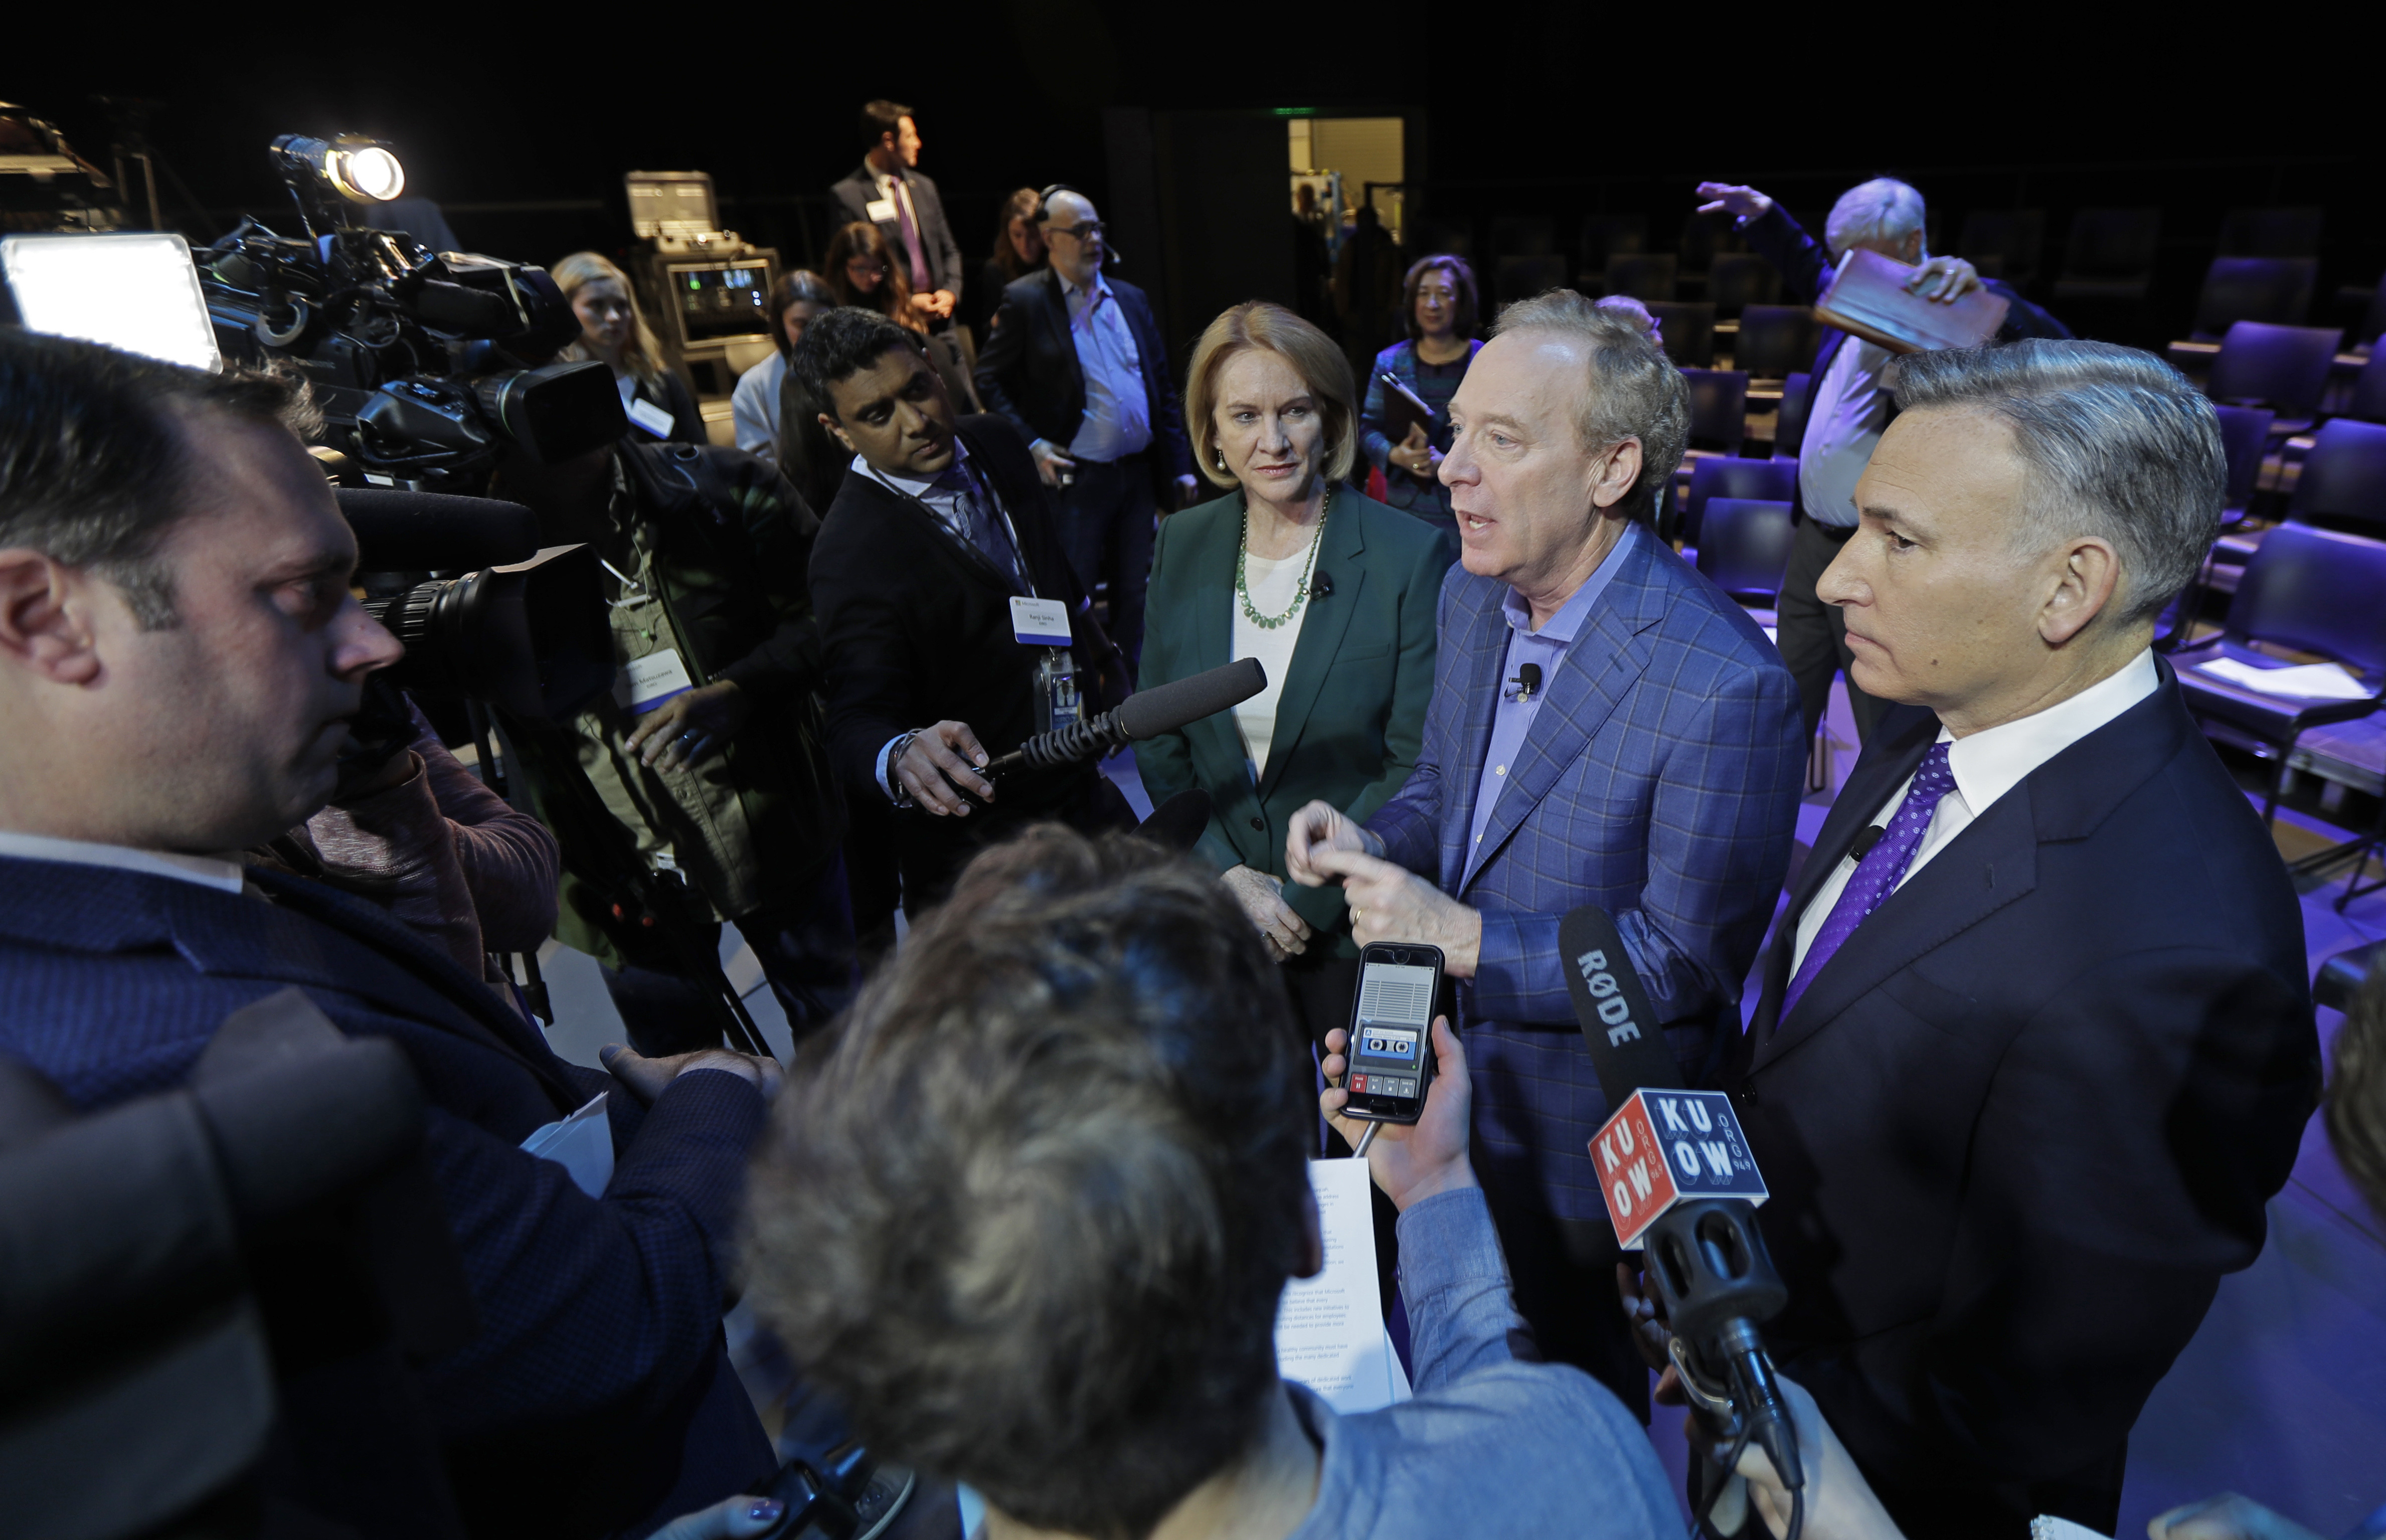 Microsoft Corp. President Brad Smith, second from right, talks to reporters as Seattle Mayor Jenny Durkan, third from right, and King County Executive Dow Constantine, right, look on, Thursday, Jan. 17, 2019, following a news conference in Bellevue, Wash., to announce a $500 million pledge by Microsoft Corp. to develop affordable housing for low- and middle-income workers in response to the Seattle region's widening affordability gap and to also to address homelessness. (AP Photo/Ted S. Warren)